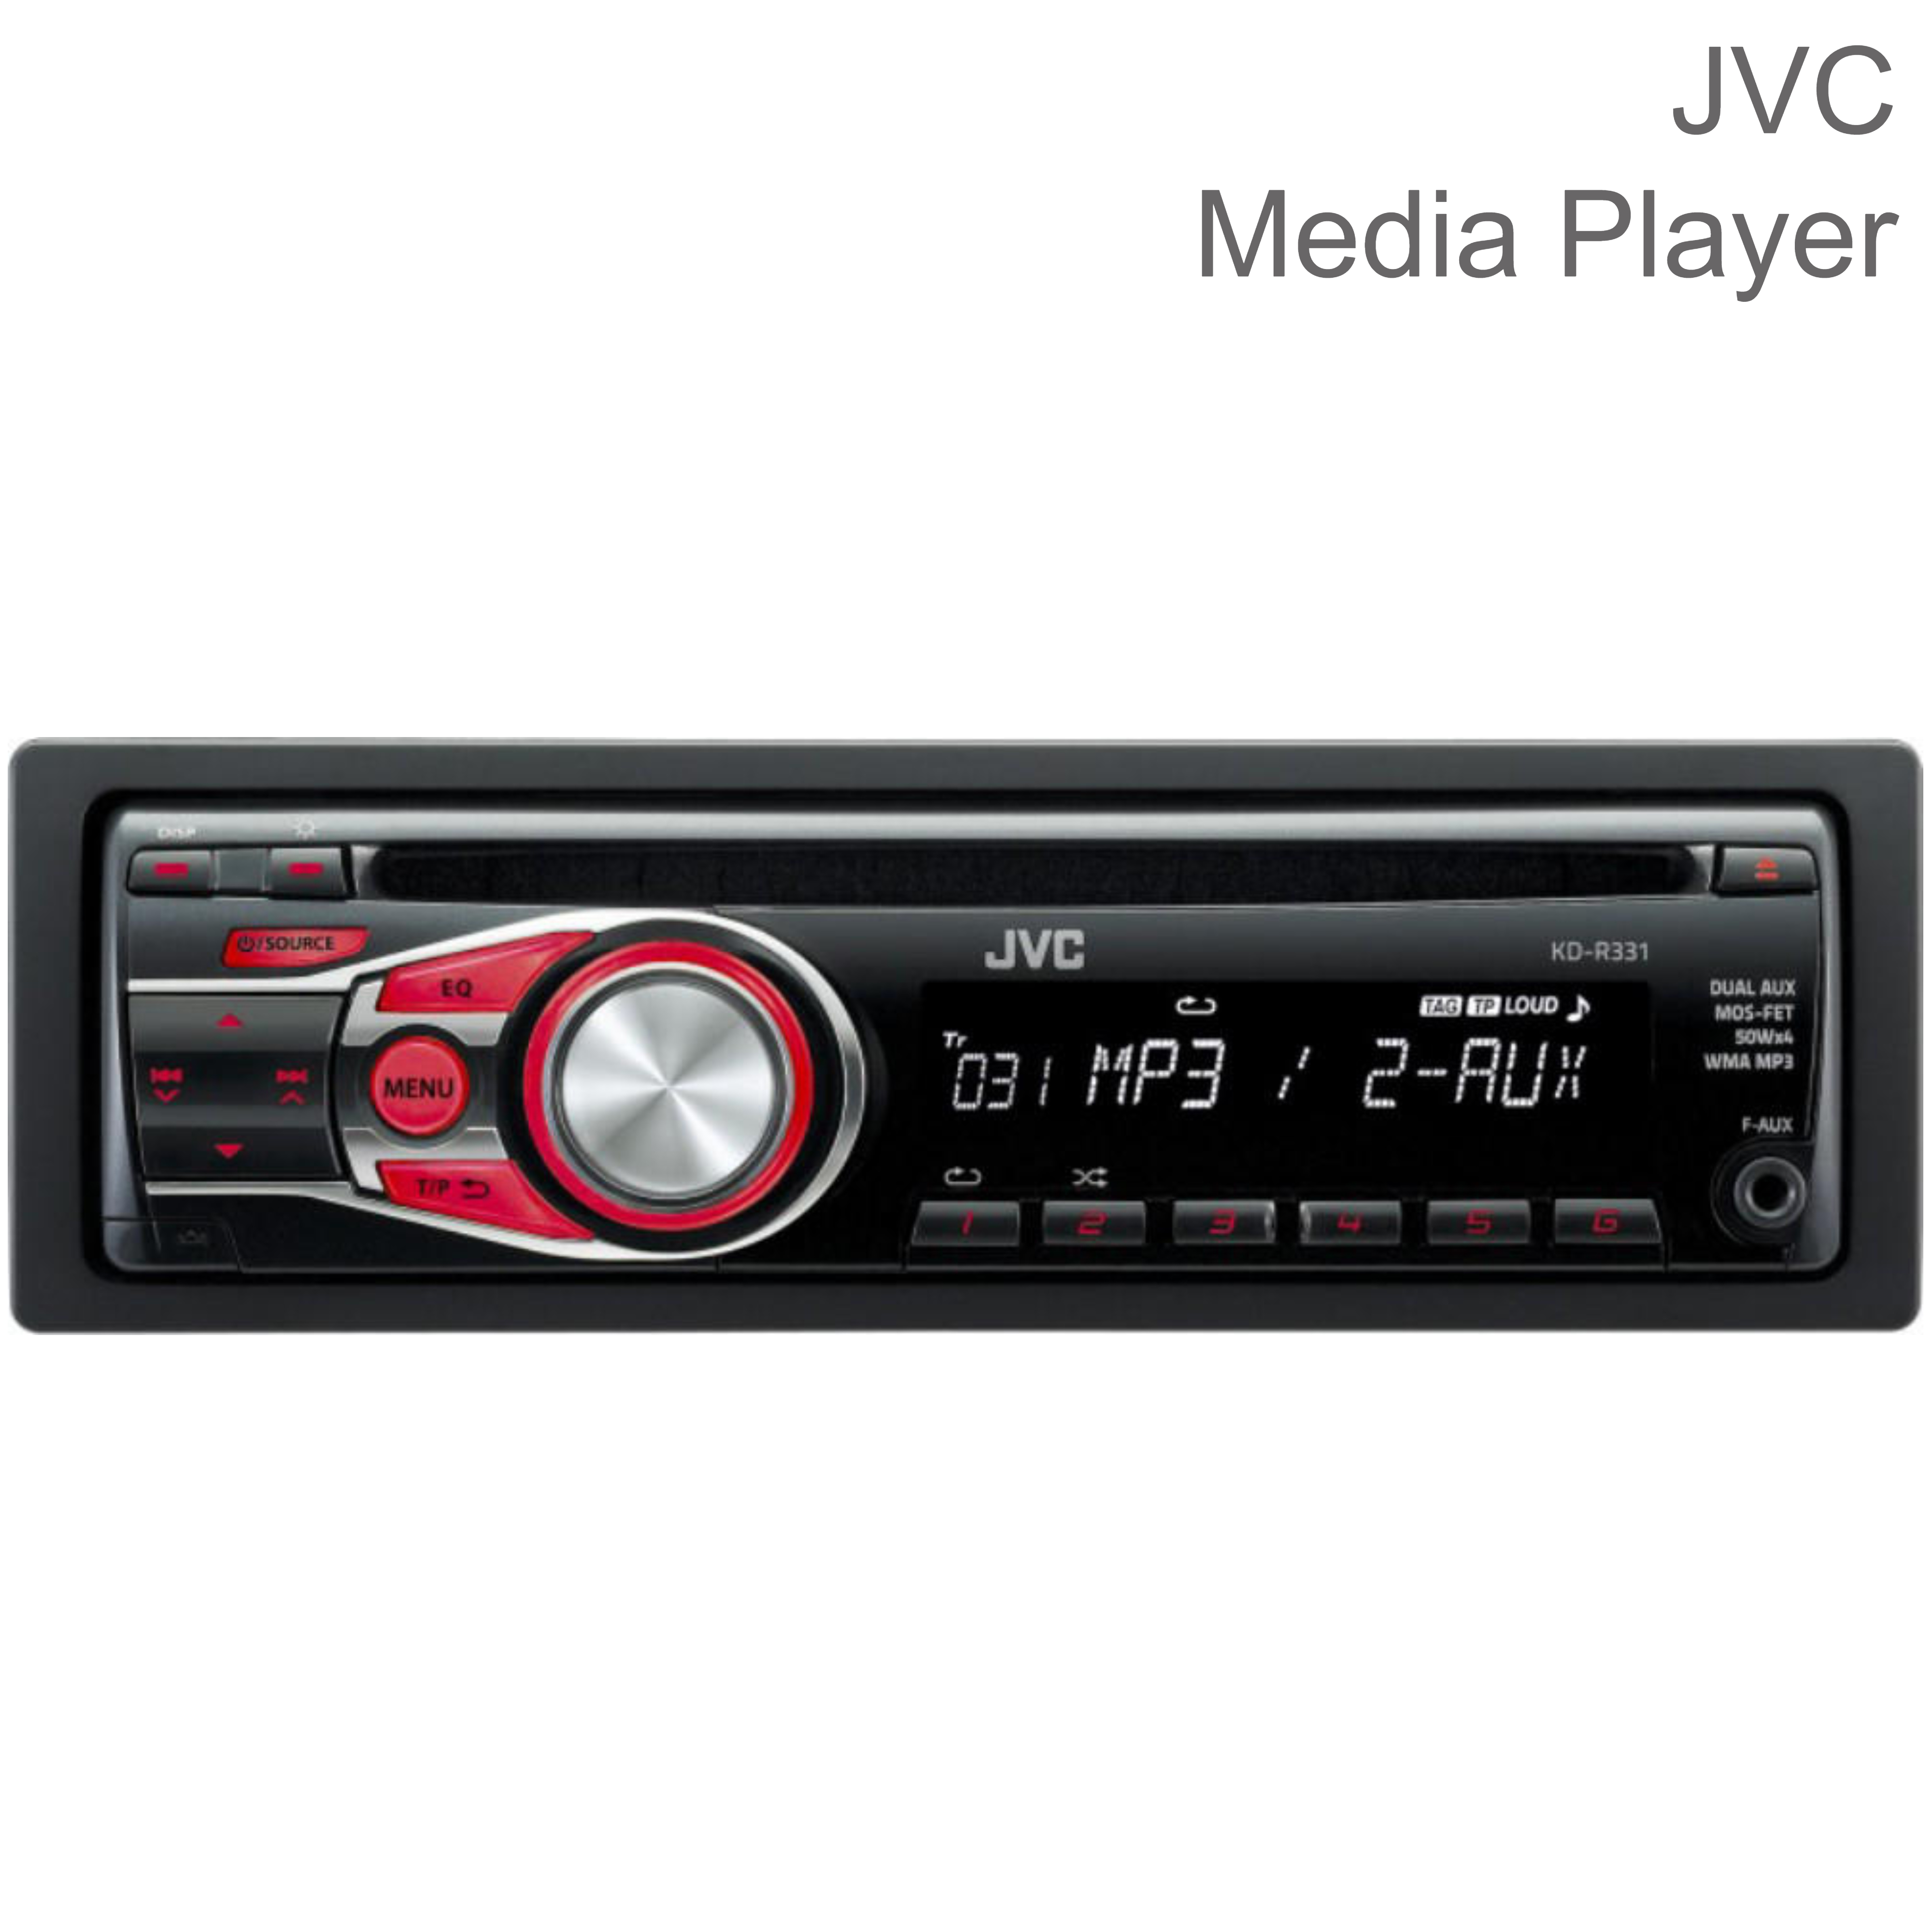 JVC KD R331 In Car Vehicle Radio CD Player Music Audio Headunit Stereo